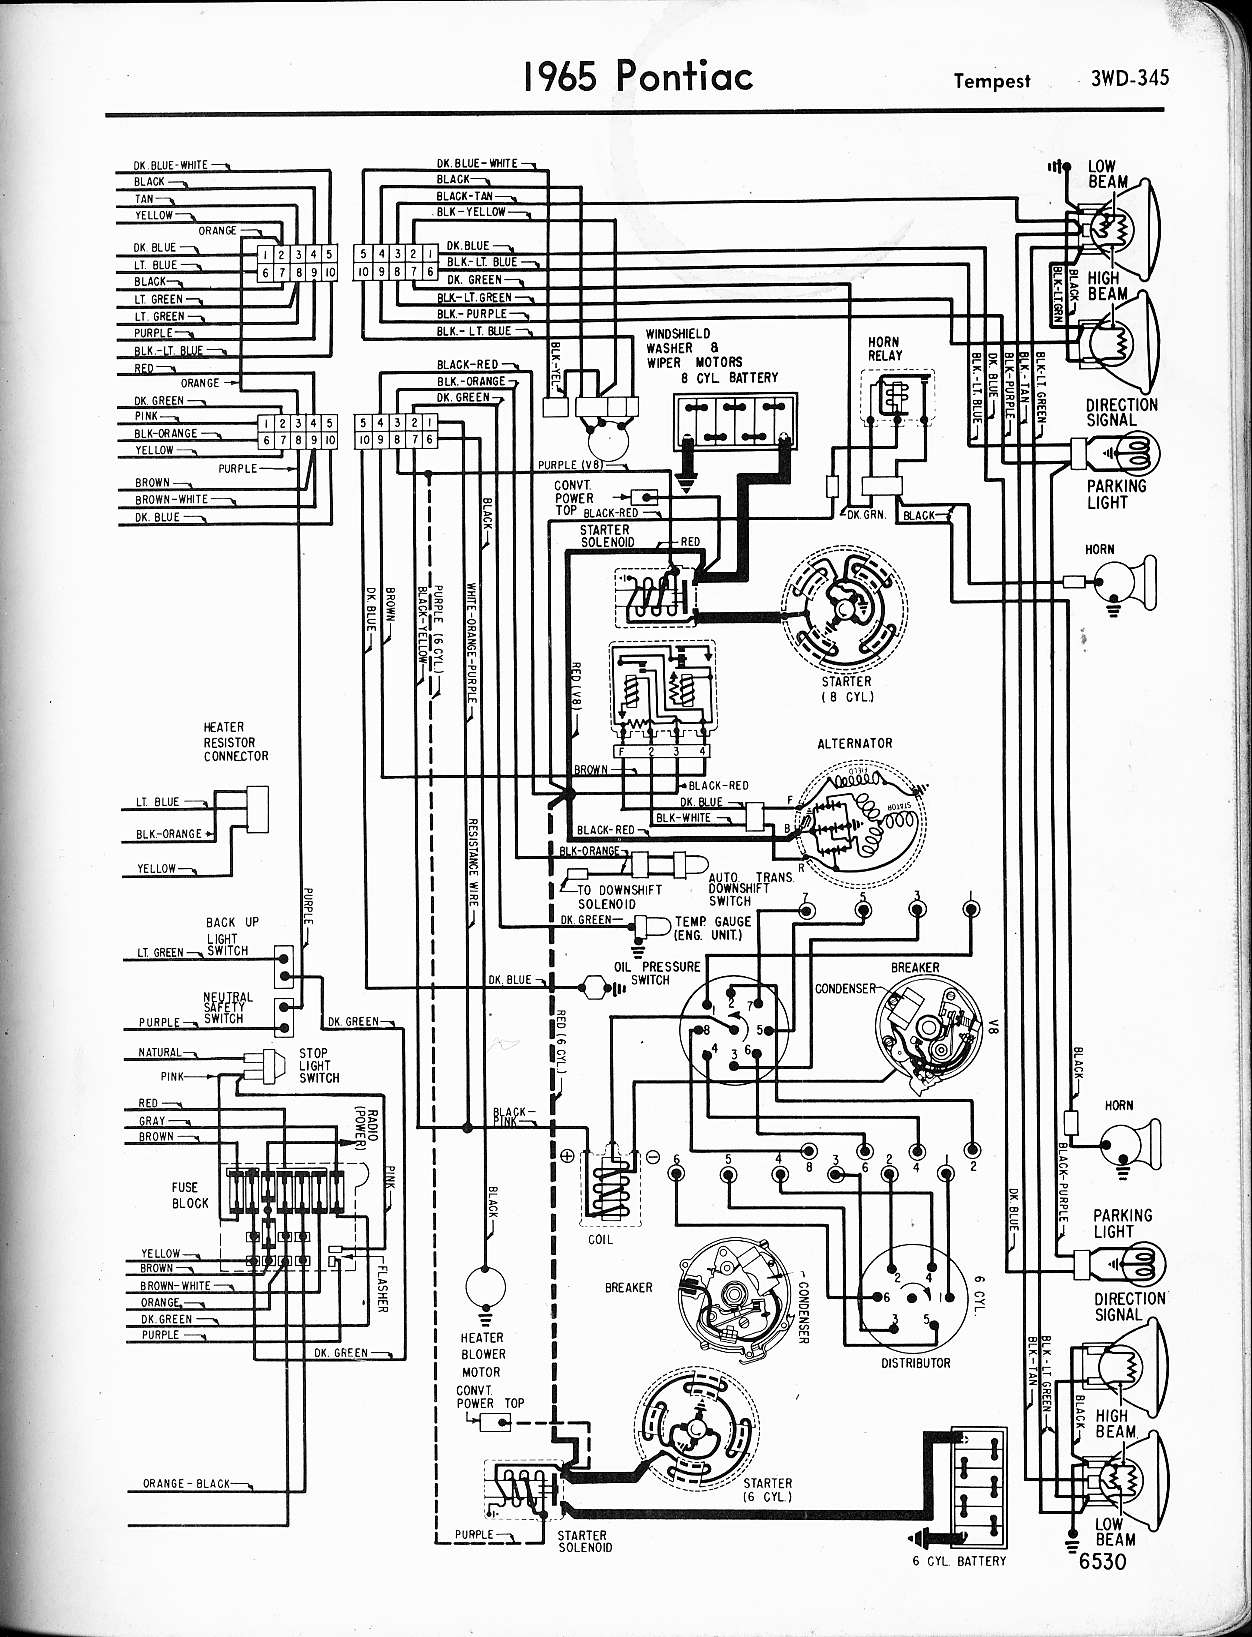 80 camaro engine wiring diagram wiring library rh 1 webseiten archiv de